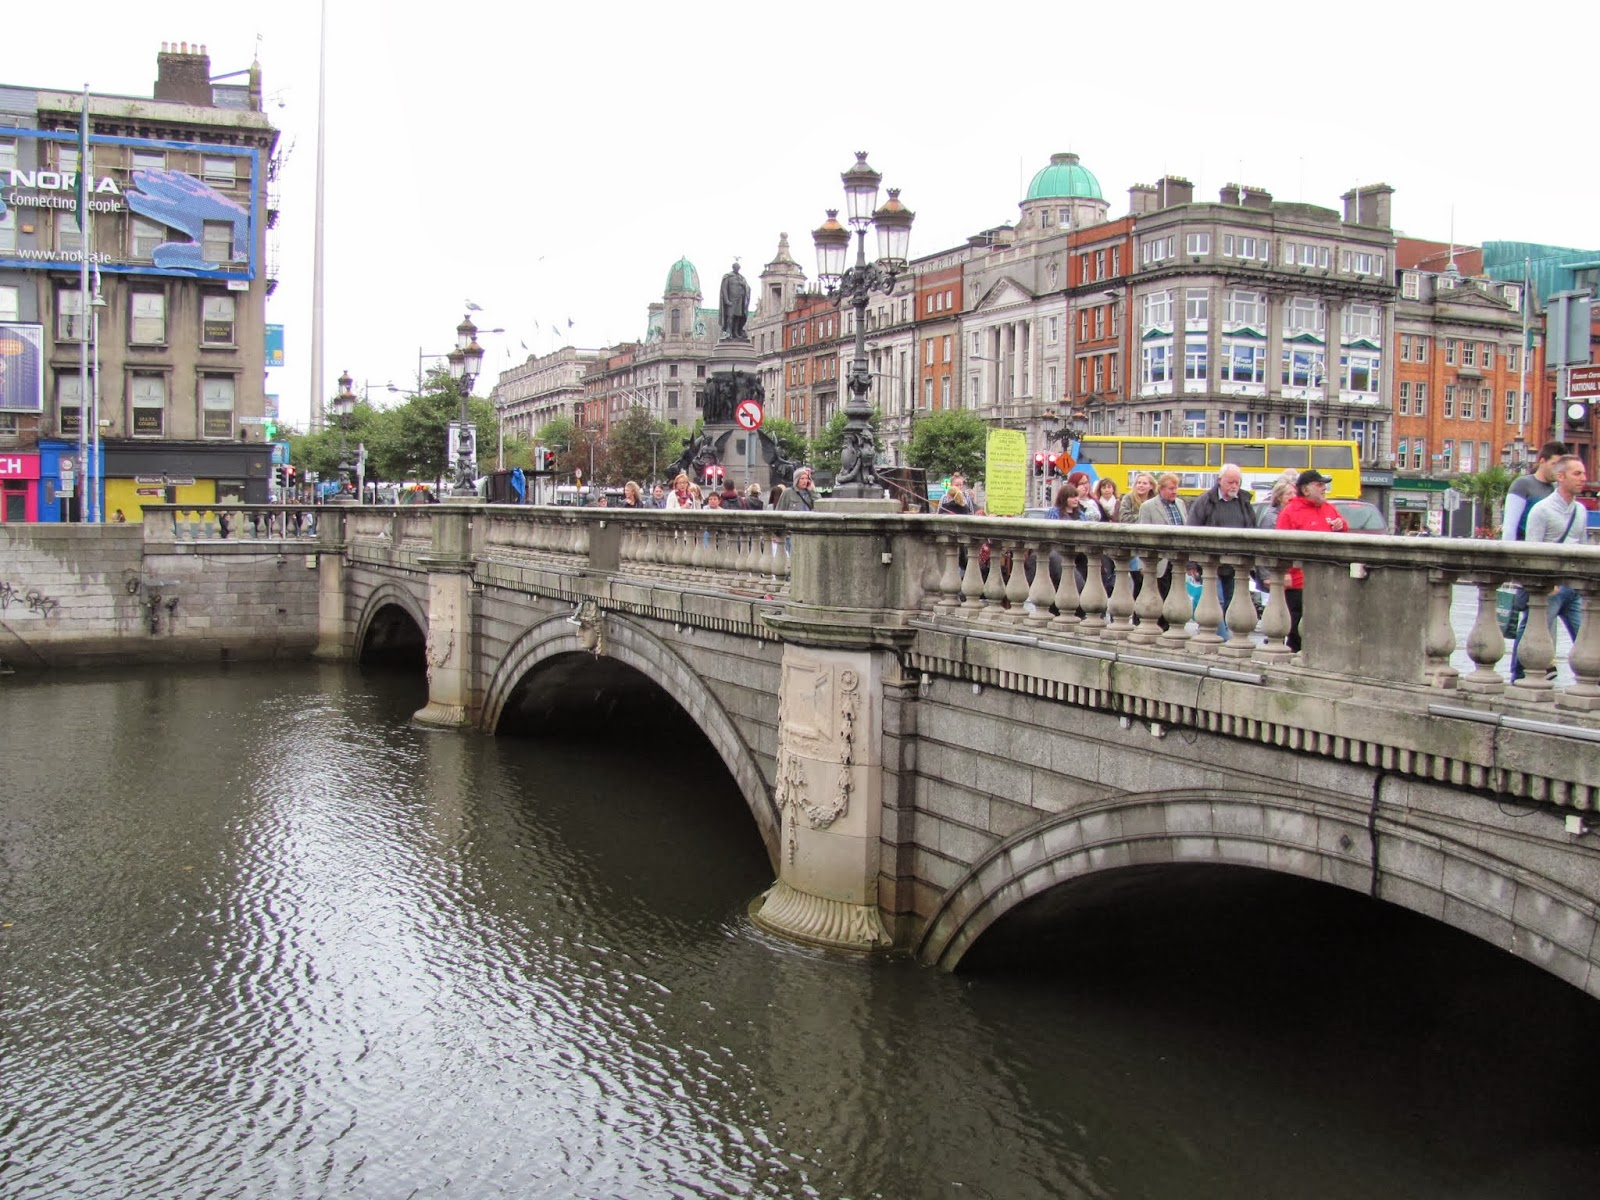 O'Connell Bridge on the River Liffey in Dublin